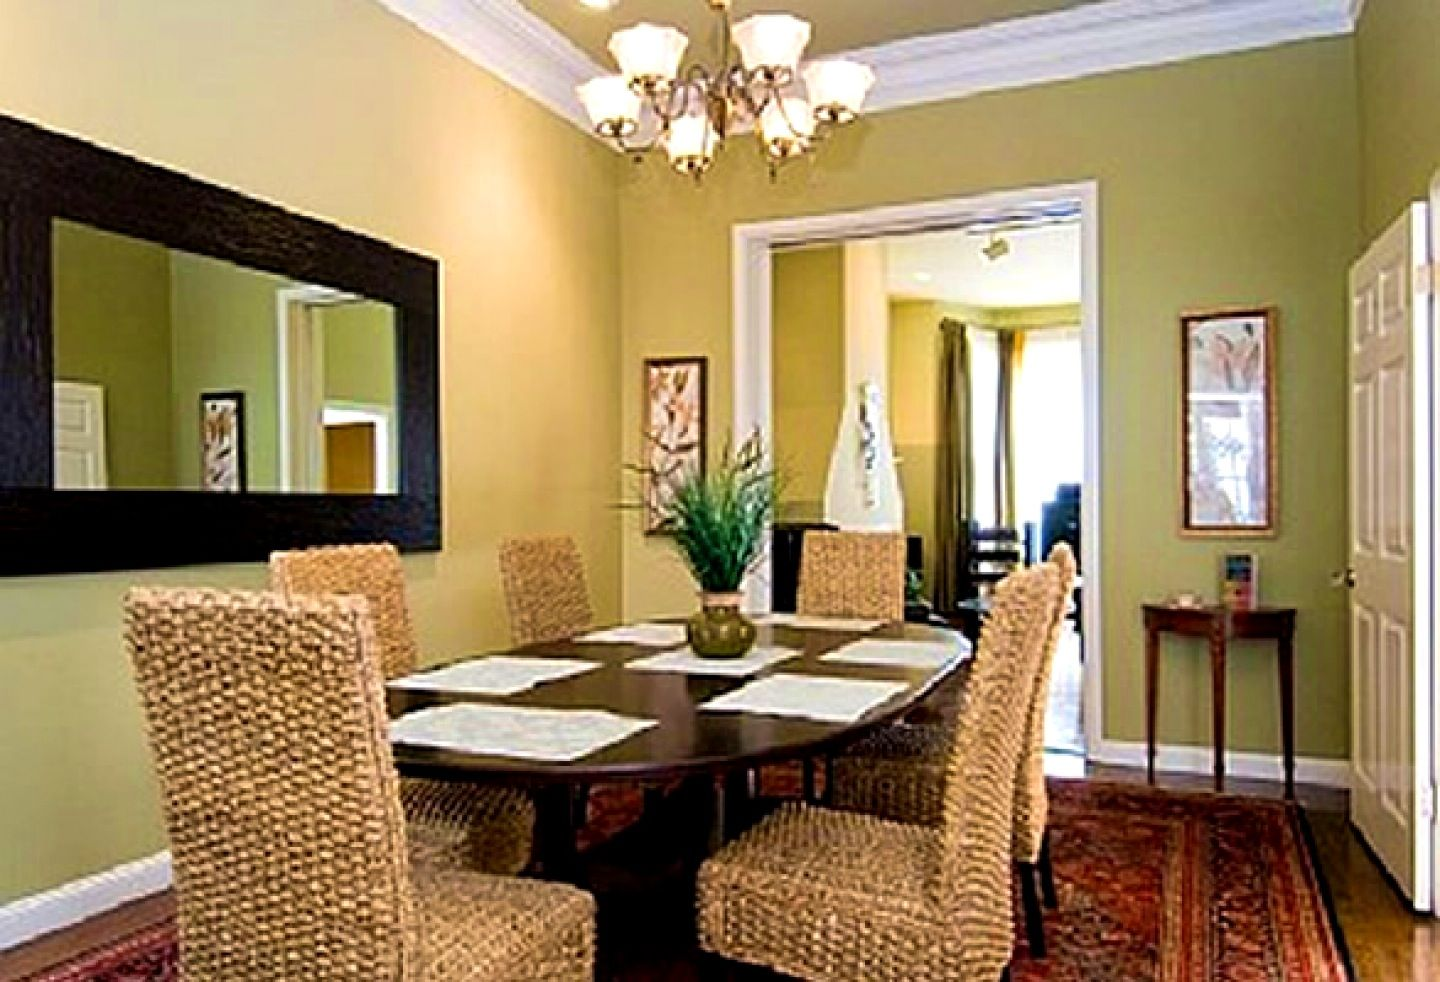 Décor For Formal Dining Room Designs Decor Around The World Dining Room Colors Modern Dining Room Dining Room Paint Colors